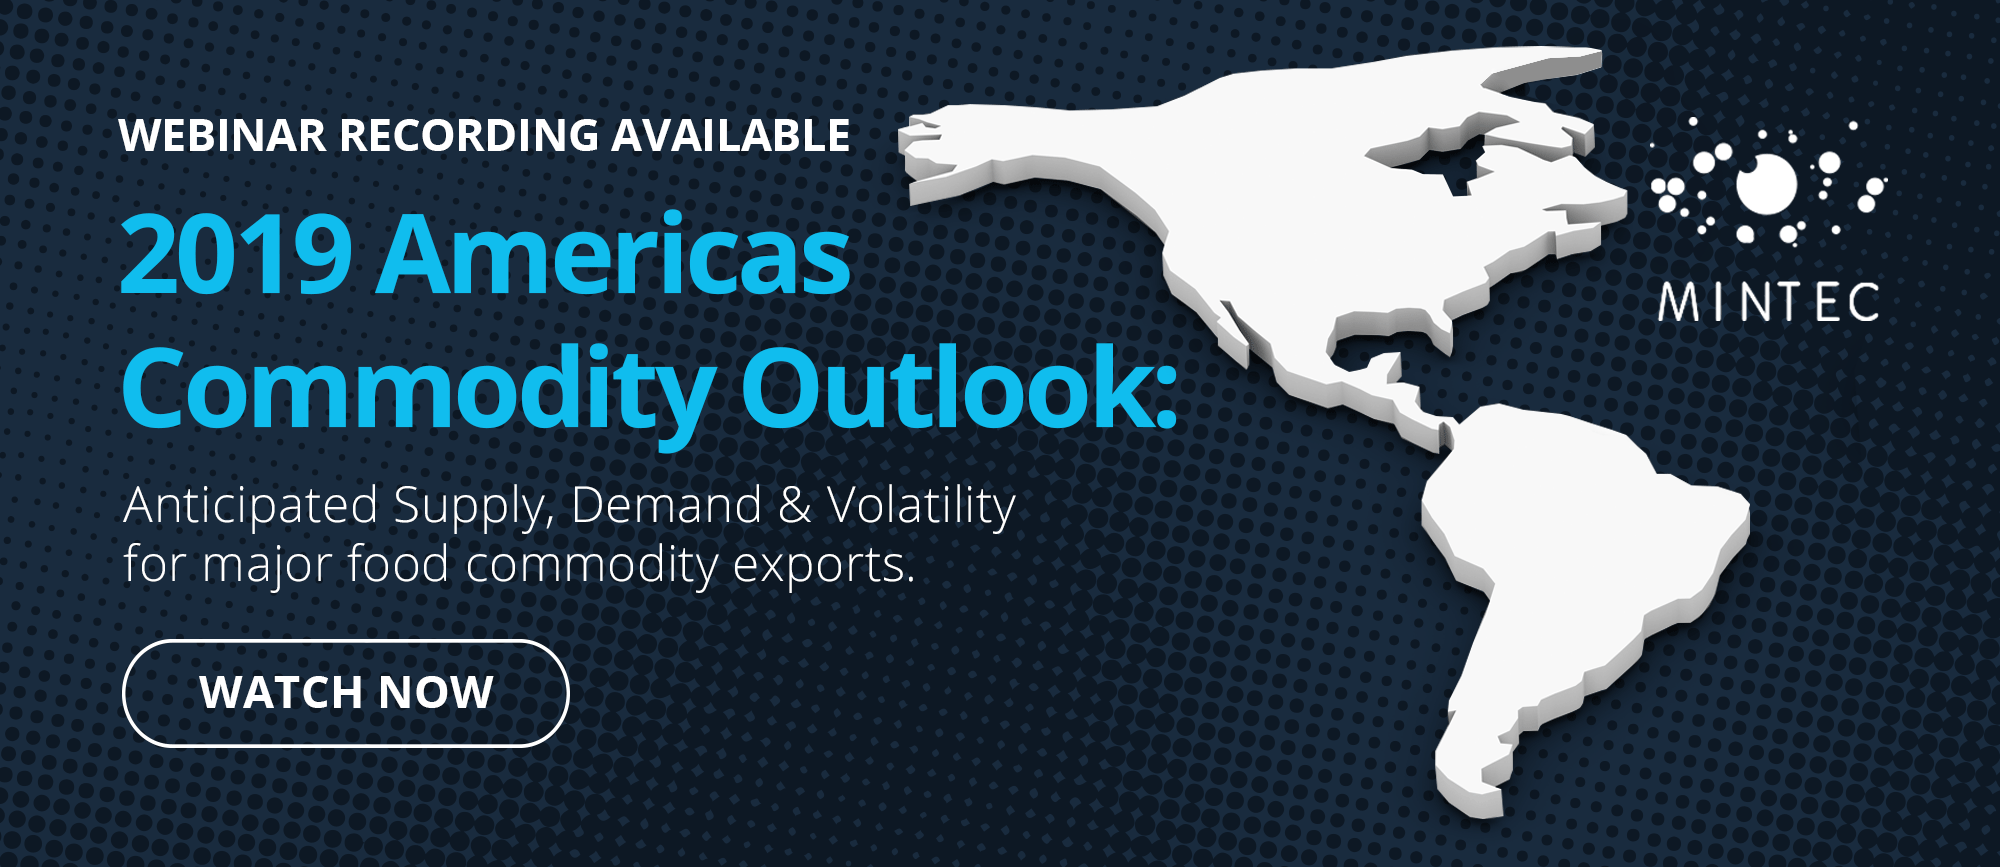 Americas Commodity Outlook - Mintec